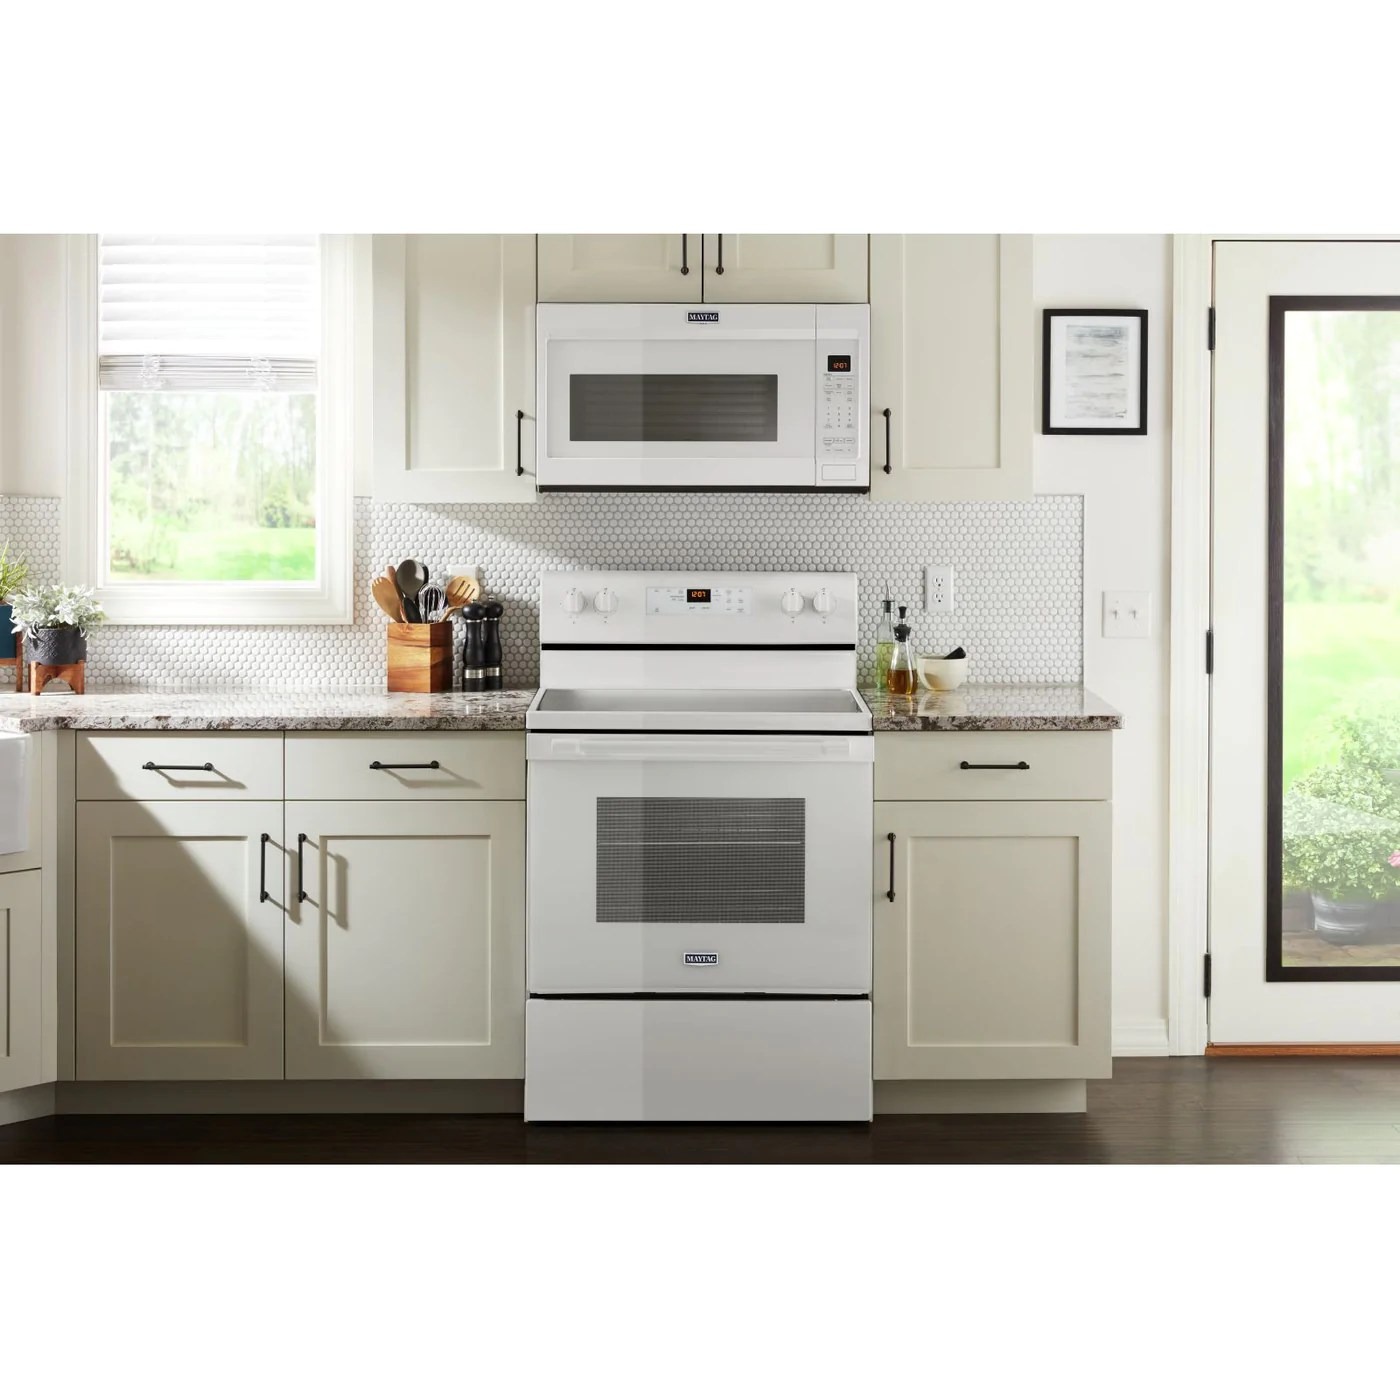 maytag white over the range microwave 1 9 cu ft ymmv4207jw